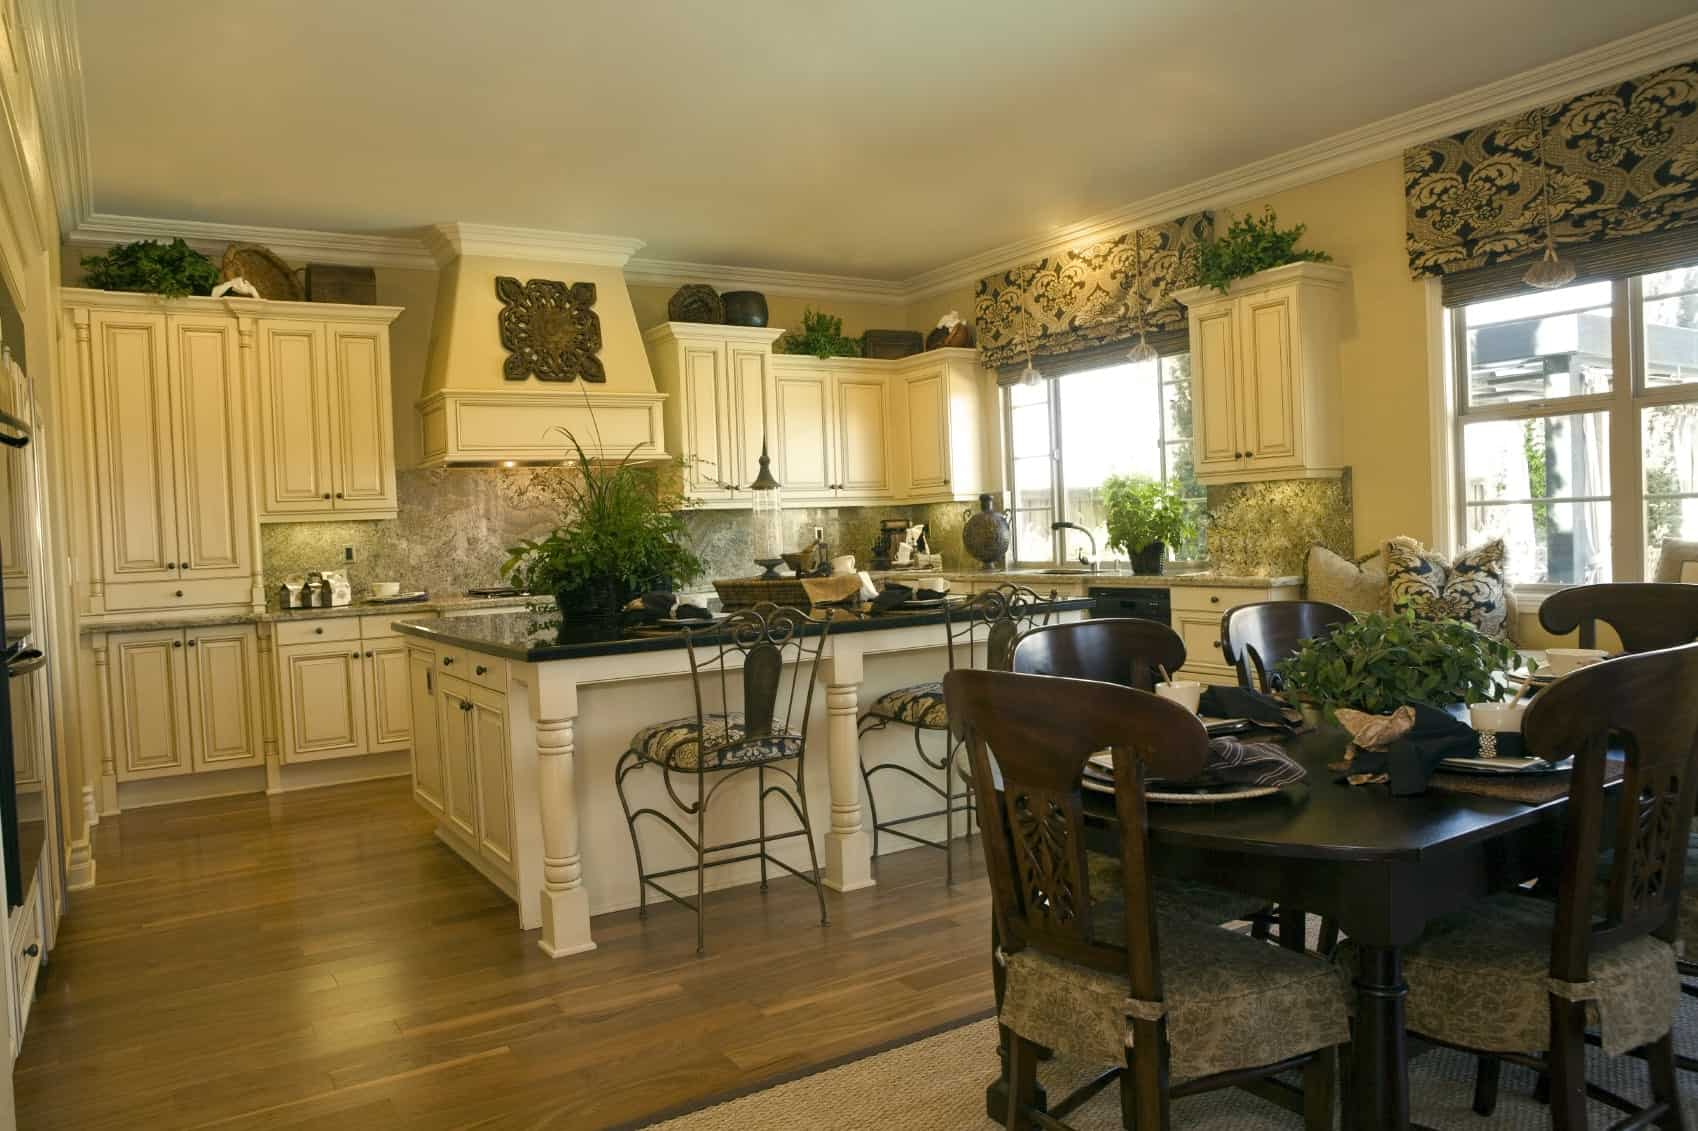 The beige vent hood of this Tropical-style kitchen is adorned with a large decorative artwork that somehow matches with the patterns of the window shades and the seat cushions of the wrought iron chairs paired with the kitchen island.